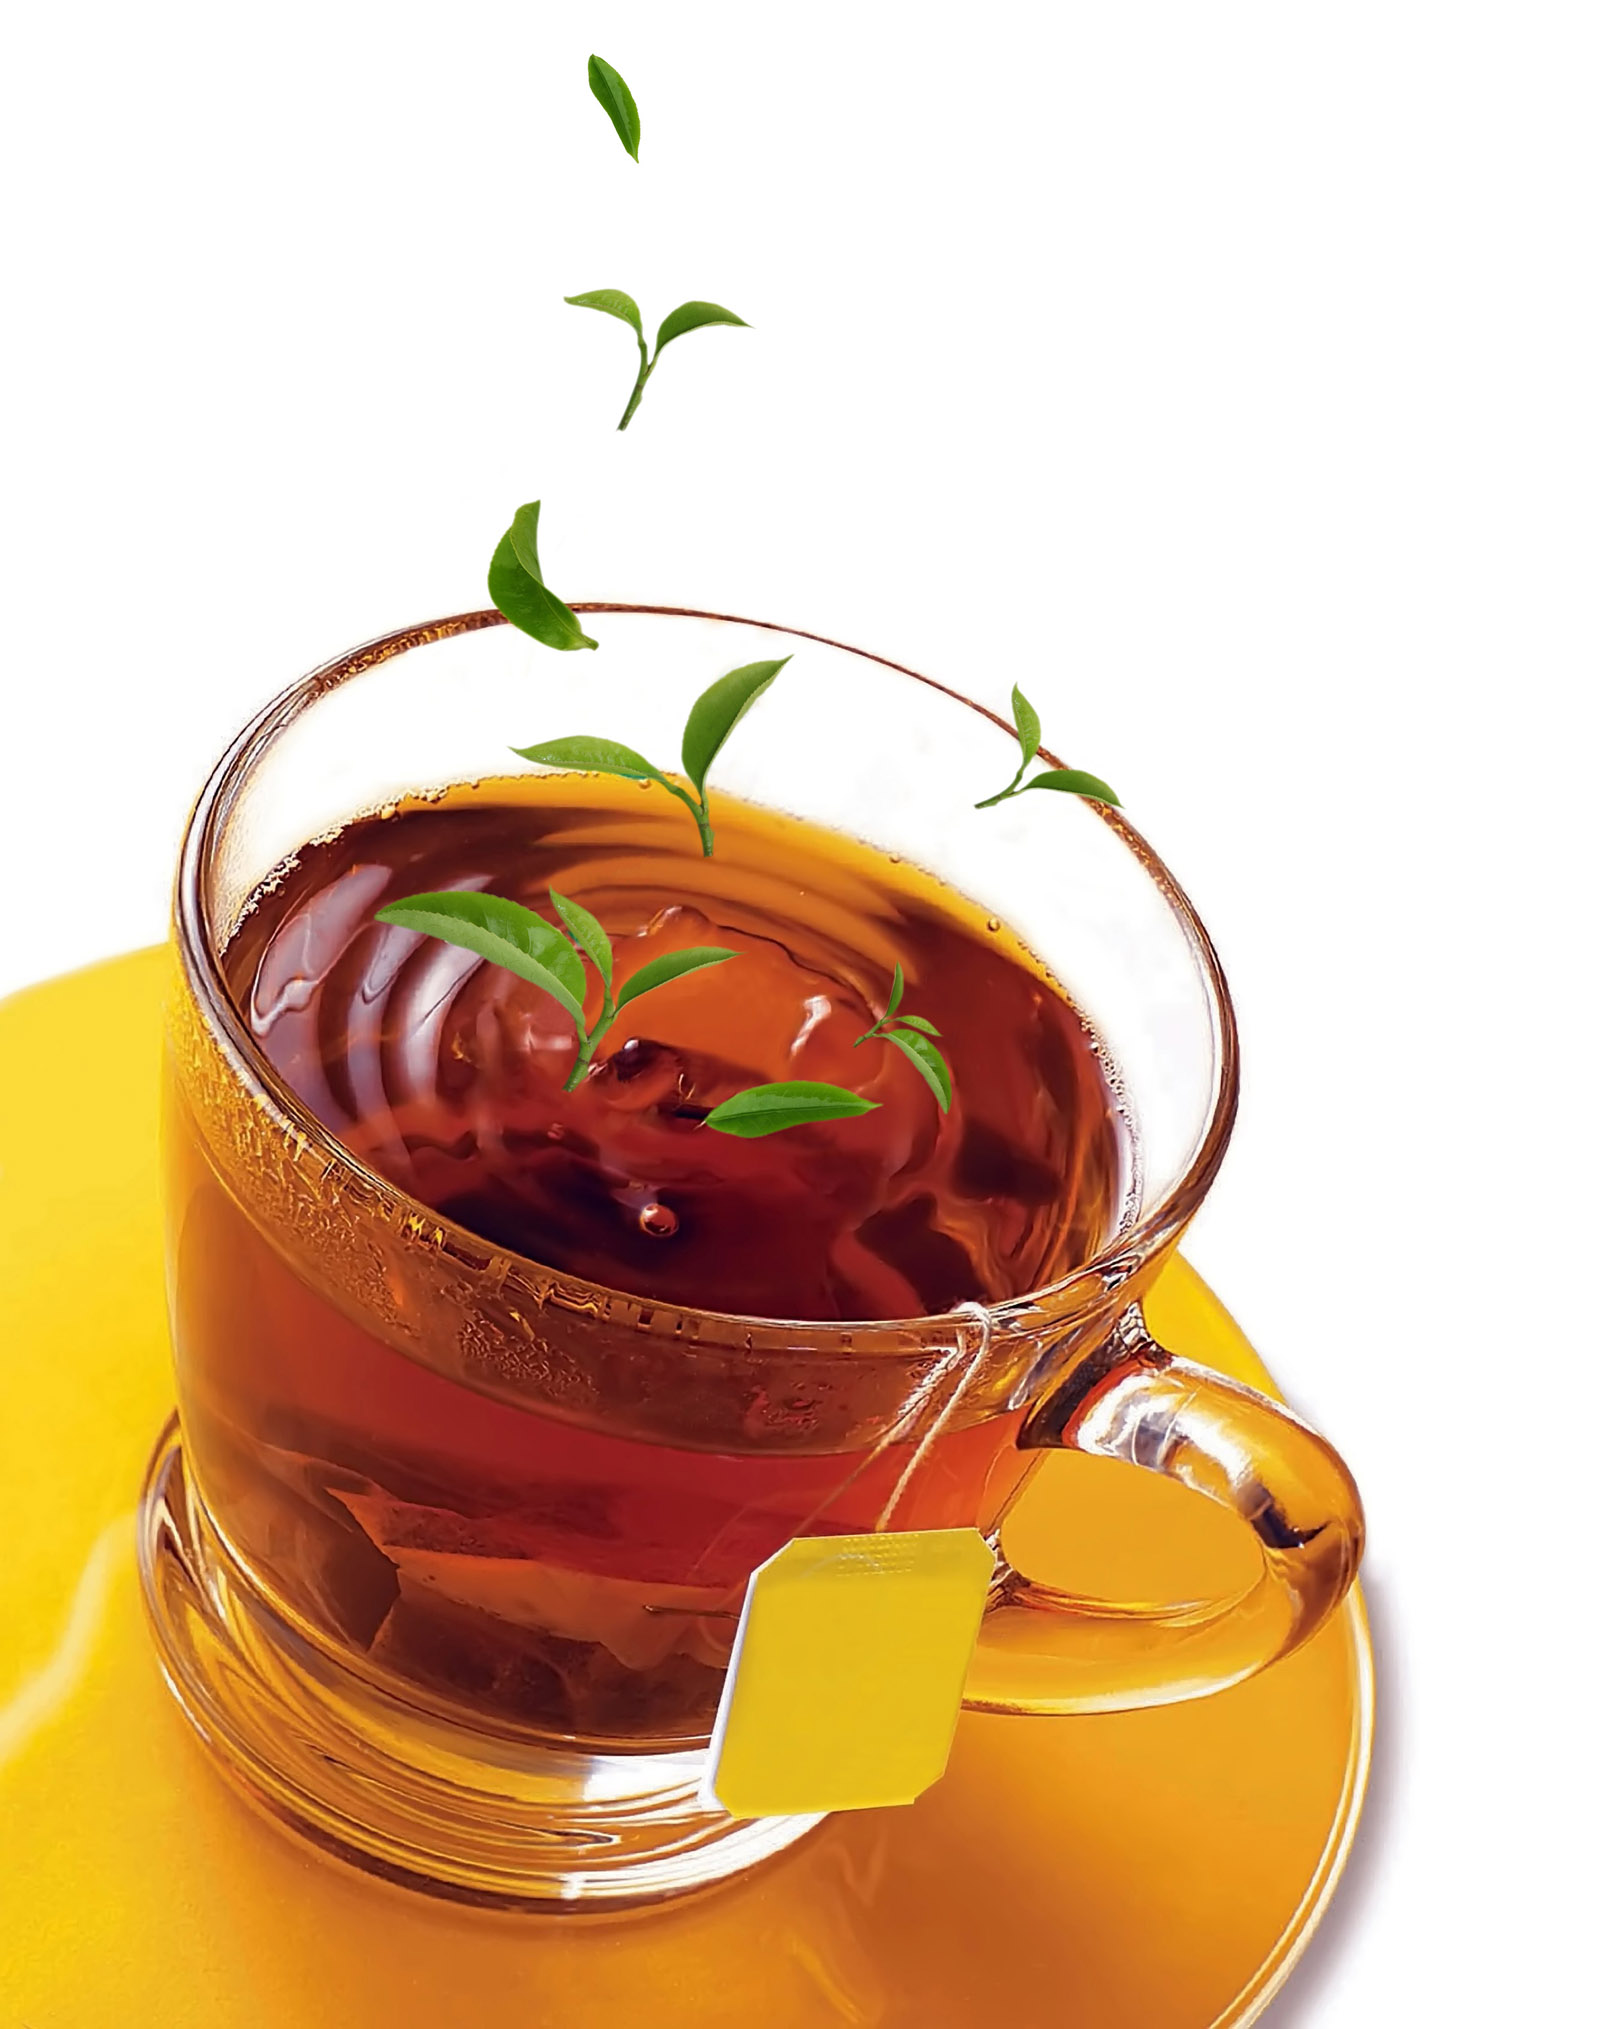 HD images of black tea 12587